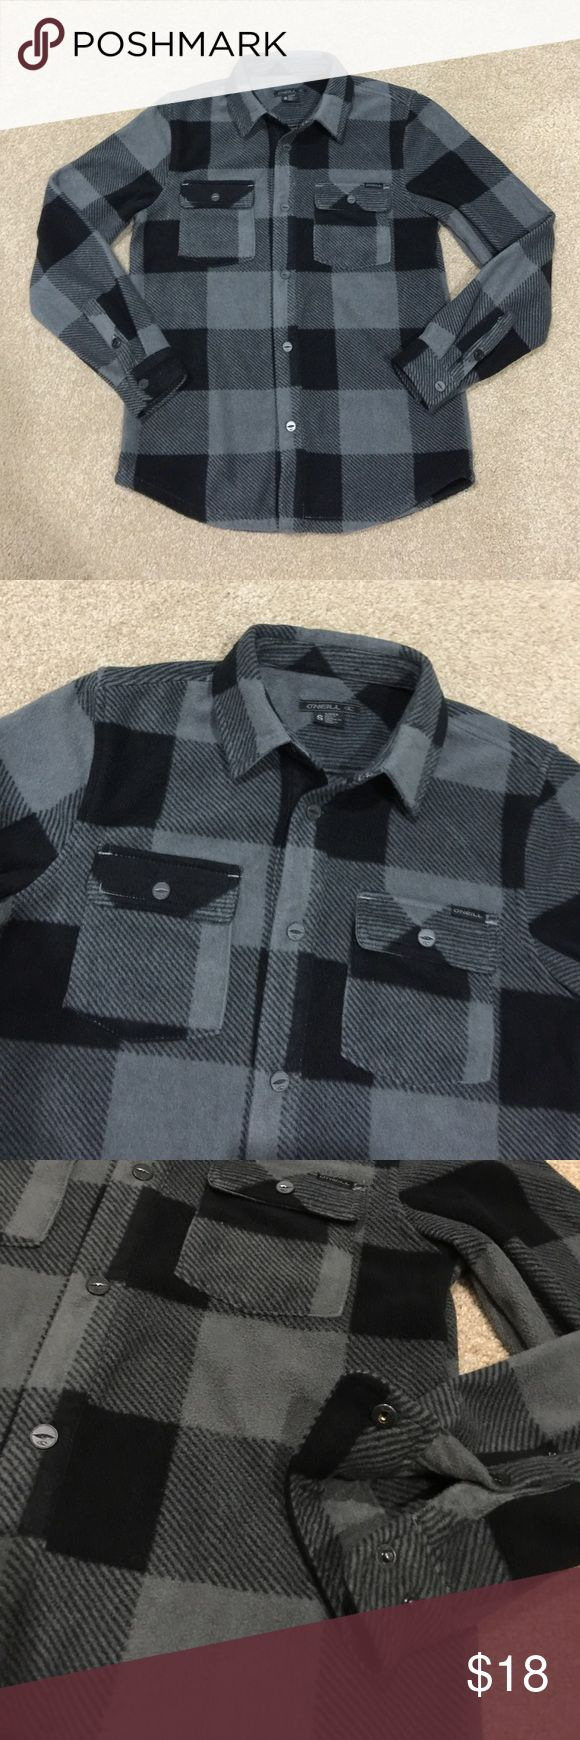 Boy's O'Neill Flannel Boy's black & gray O'Neill Flannel sweater. Size S, about a 7/8. Button snap front and wrists. Excellent hardly worn condition. No homes, rips, tears or stains. 20% off 3+ items in my closet. BUNDLE & SAVE!! O'Neill Shirts & Tops Sweaters